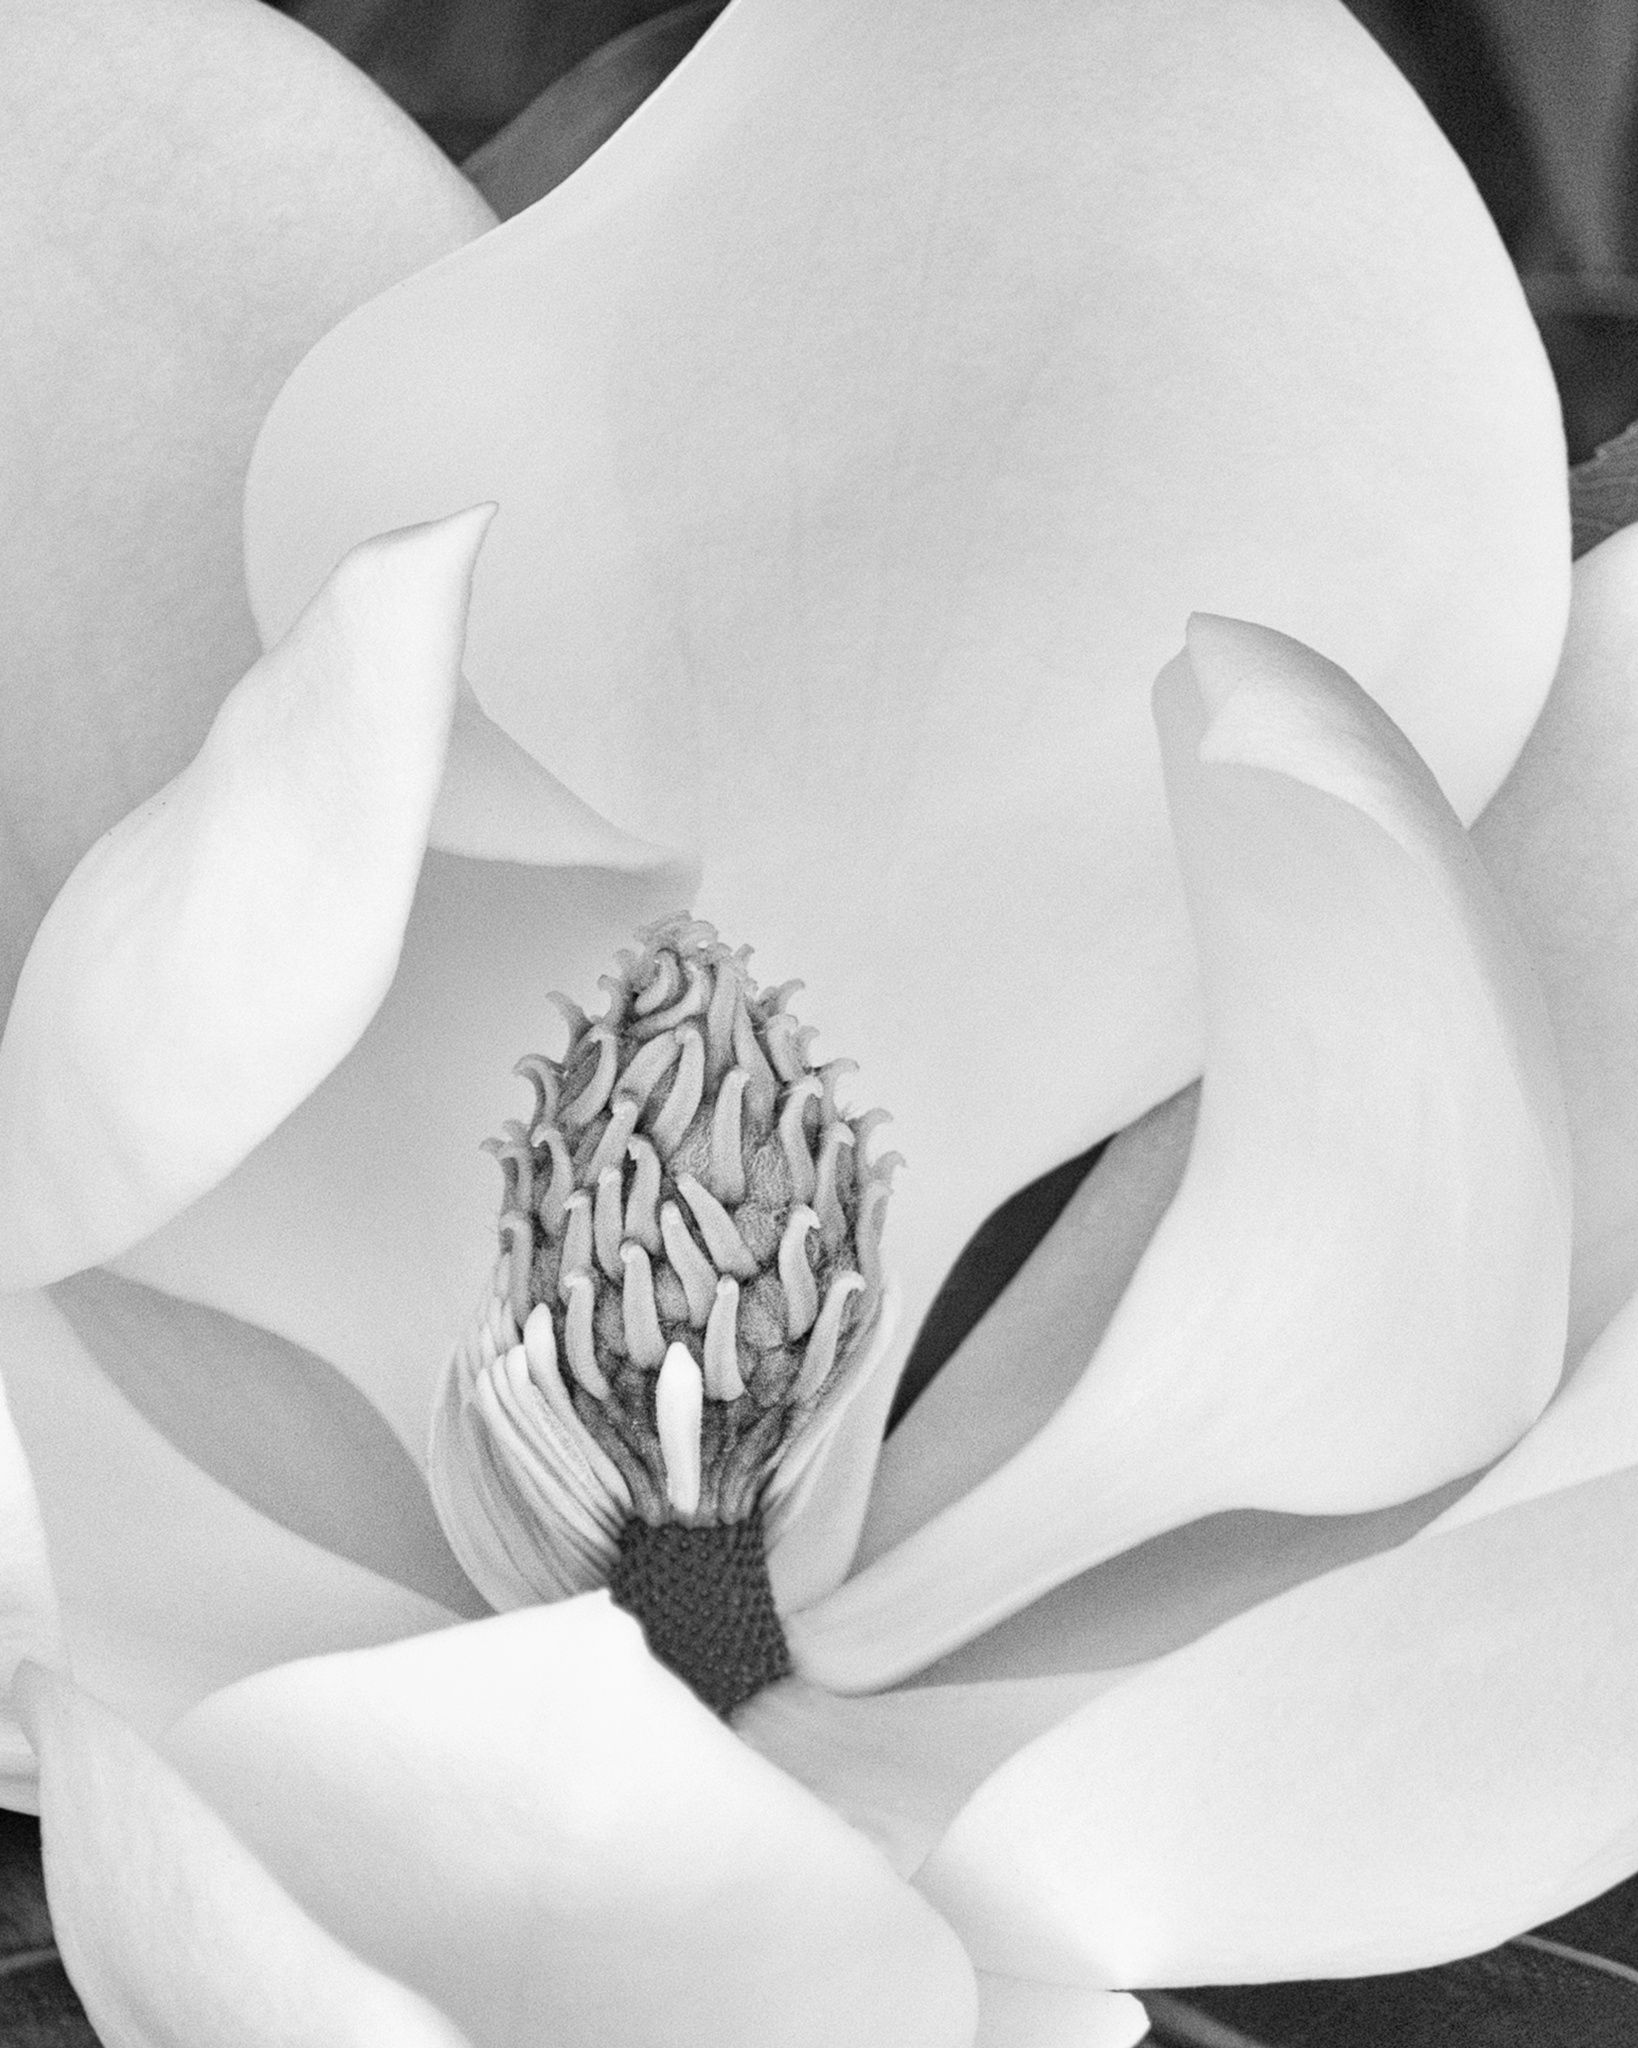 Magnolia Blossom by Connie Terry on 500px #photography #flower #magnolia #blackandwhite #nature #macro